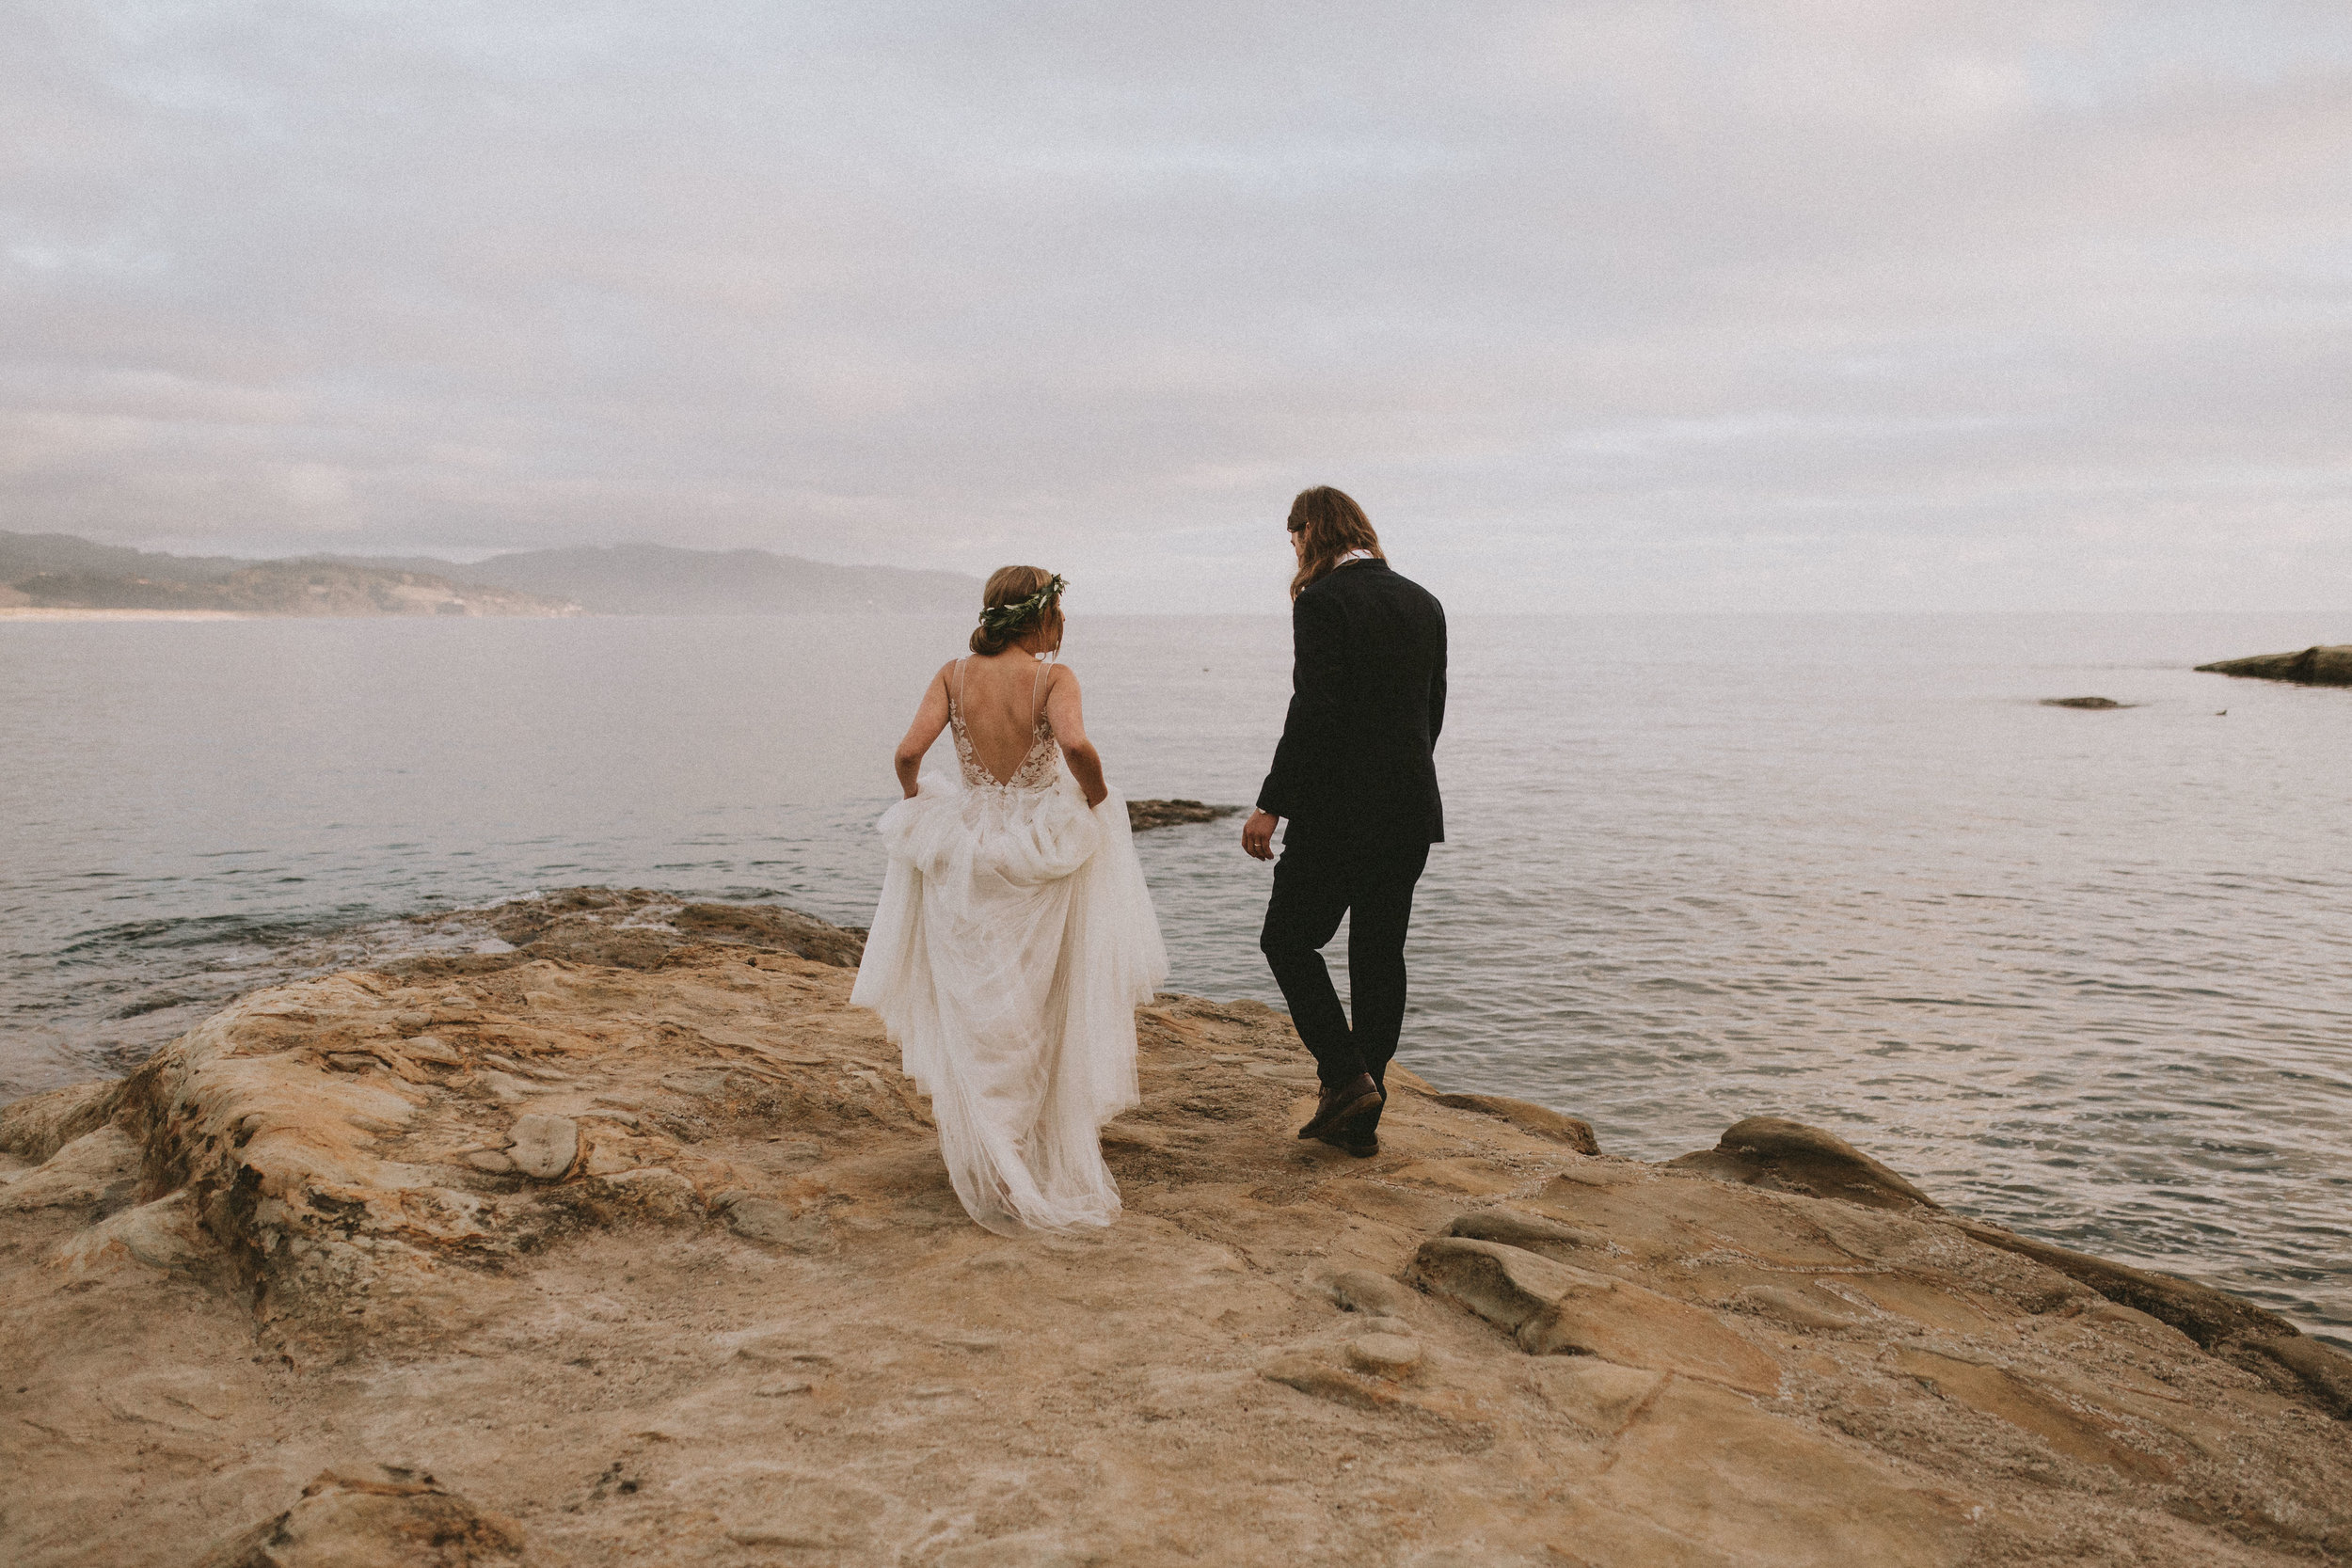 Elopements + Small Weddings - Starting at $3,950